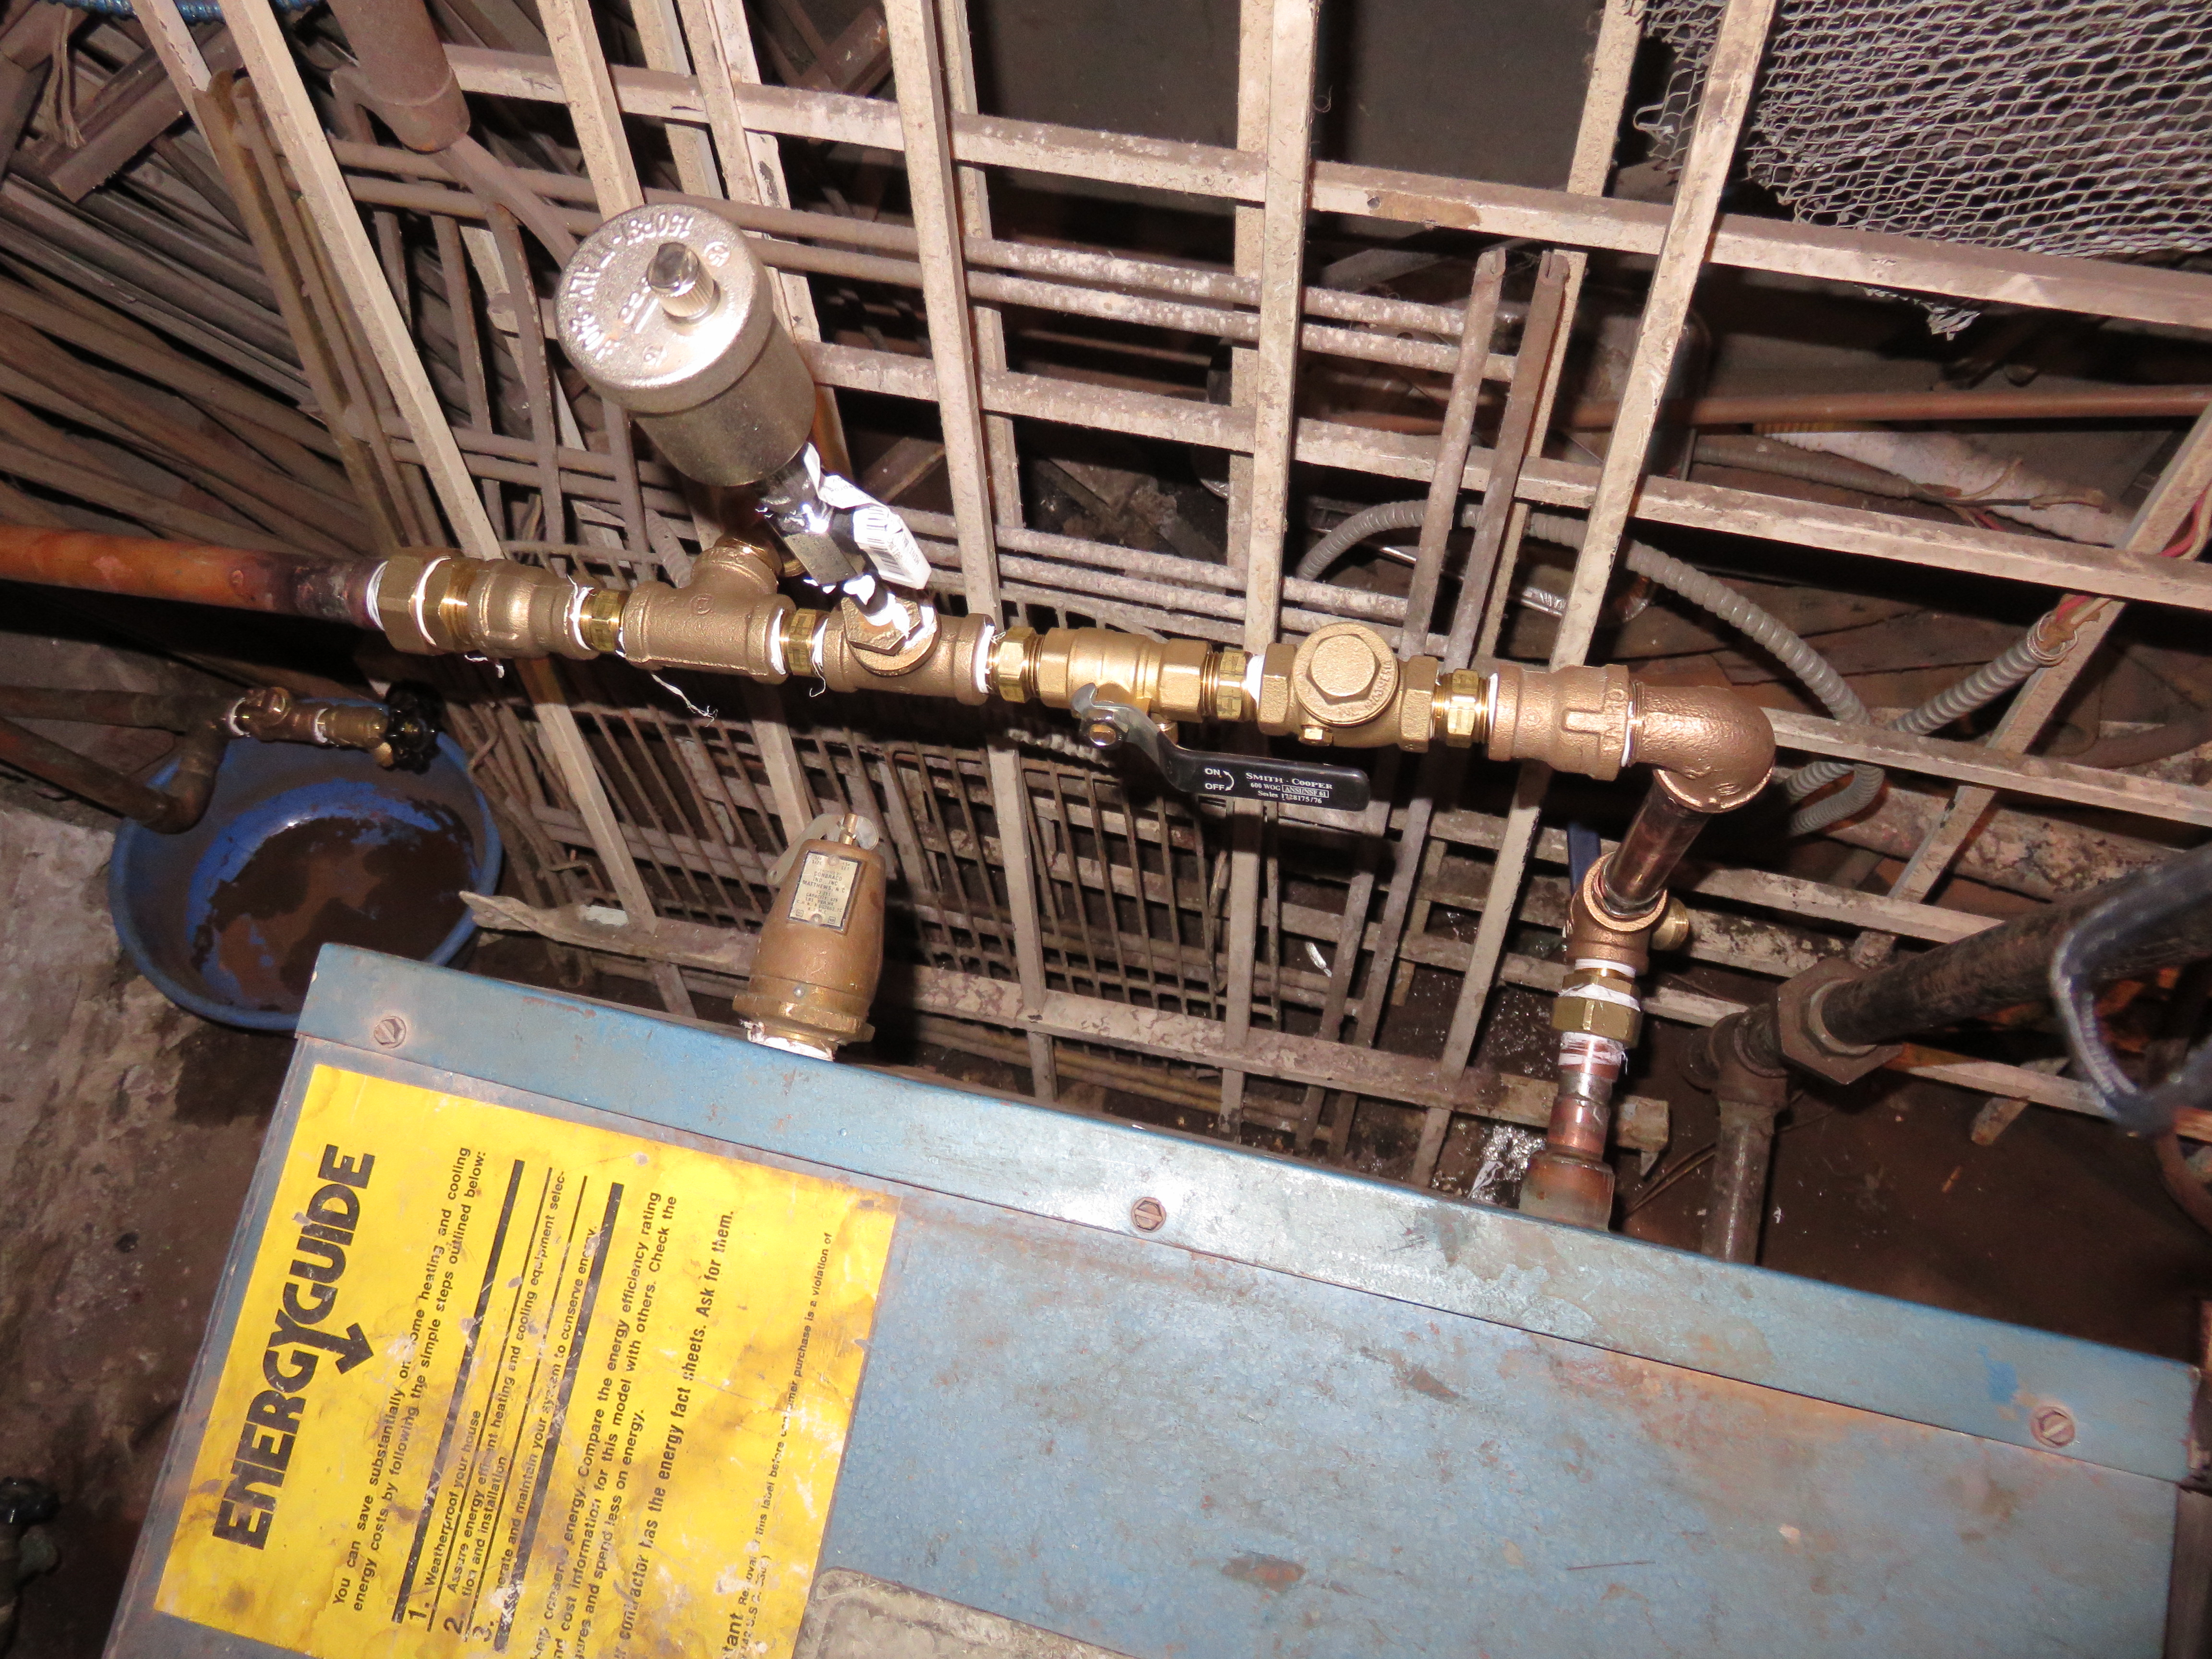 Water Hammer In Return Line From Baseboard Heating Attached To Steam Electric Heaters Heater Problems Should I Put Another Vent On The After Check Valve Near Boiler